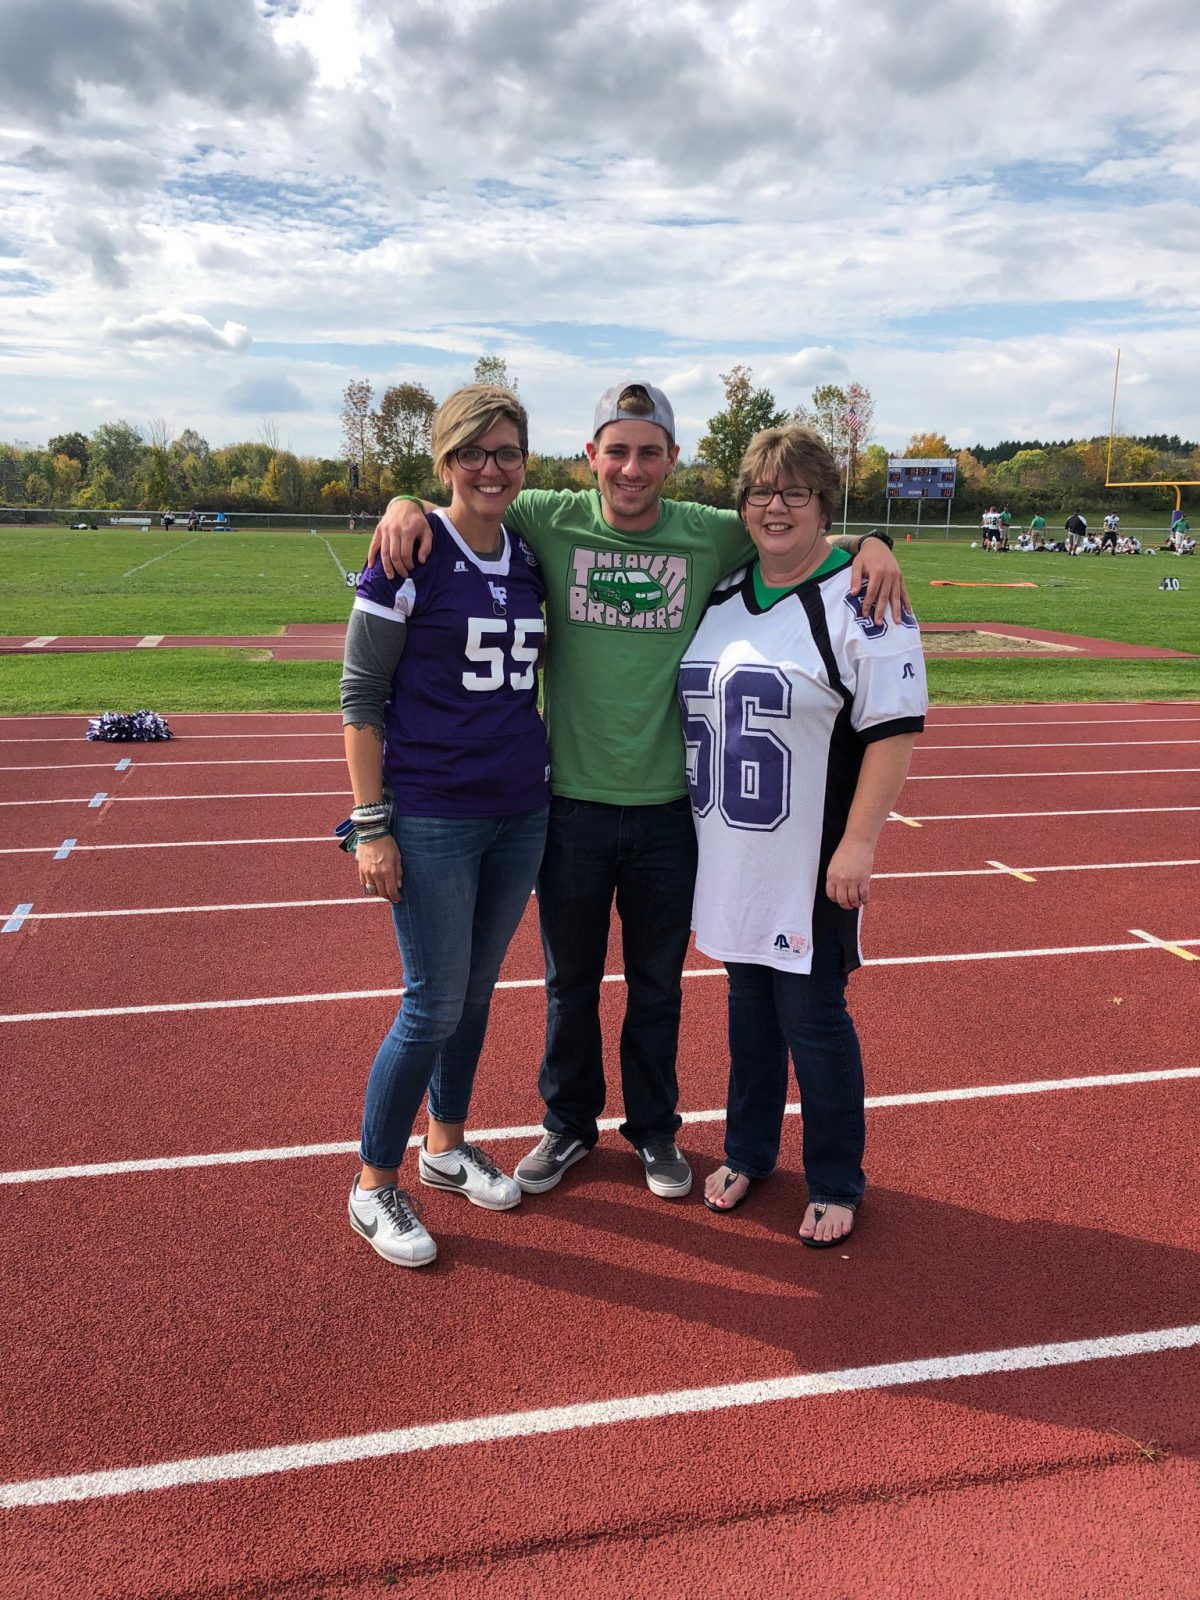 HHS raises $1,700 in 'Coins for Connor'